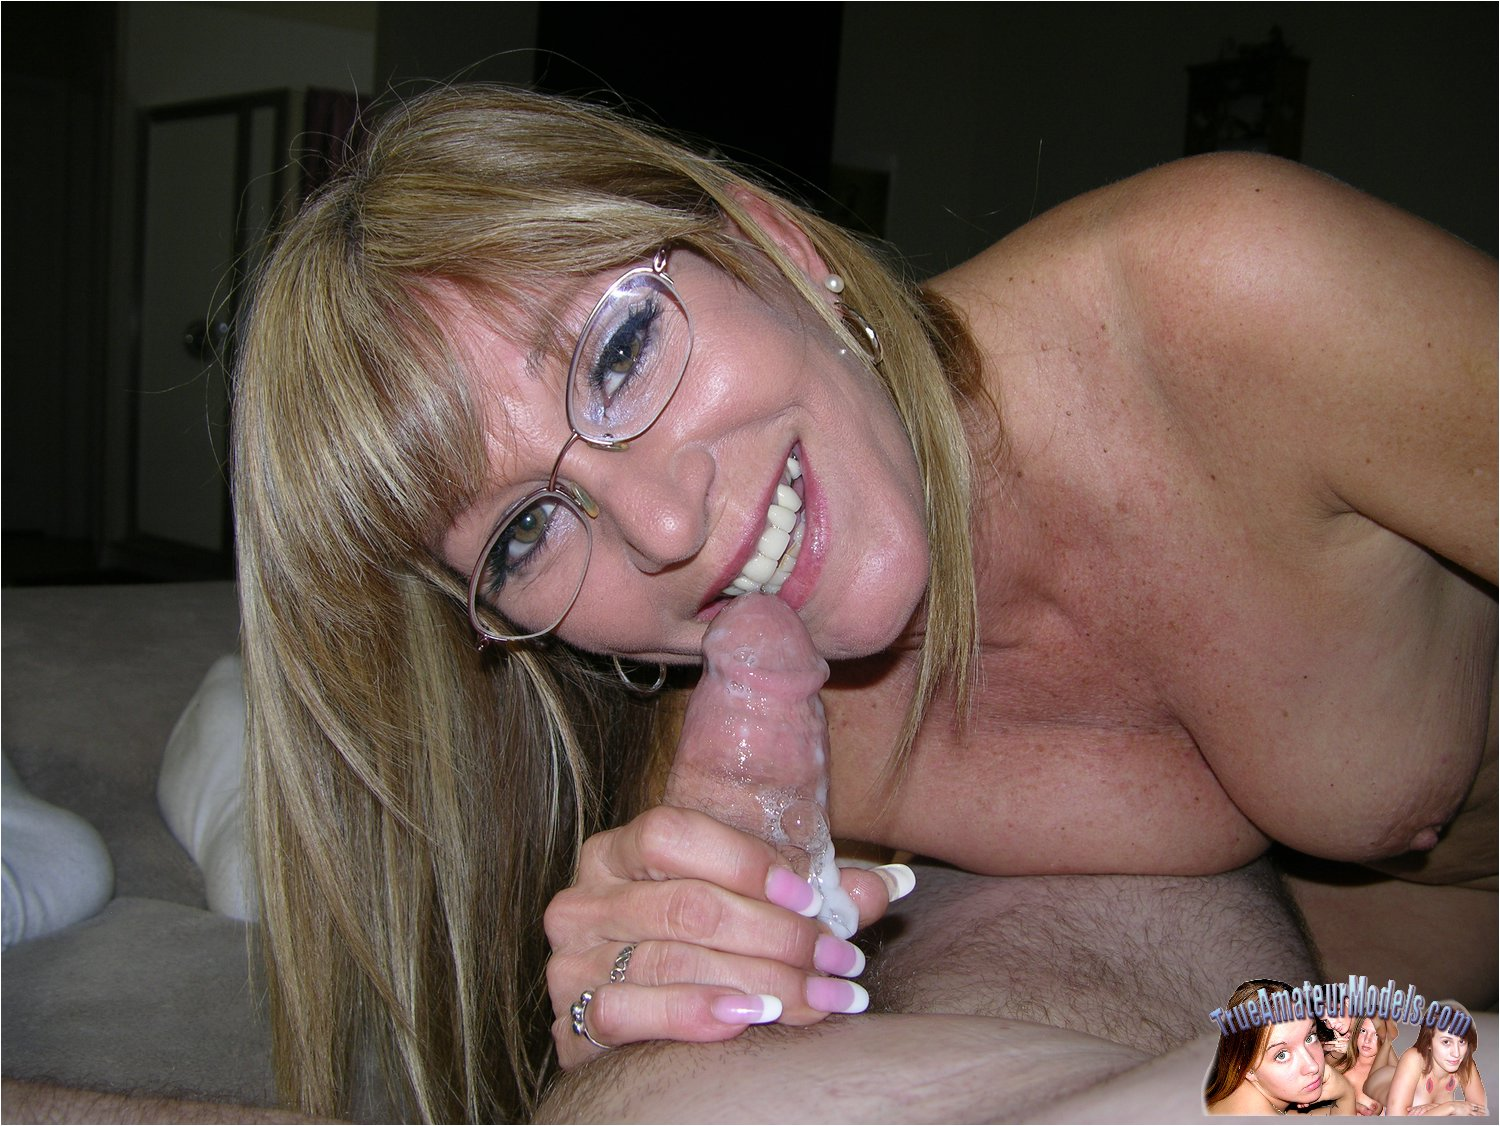 nude pictures of grandmas giving blowjobs